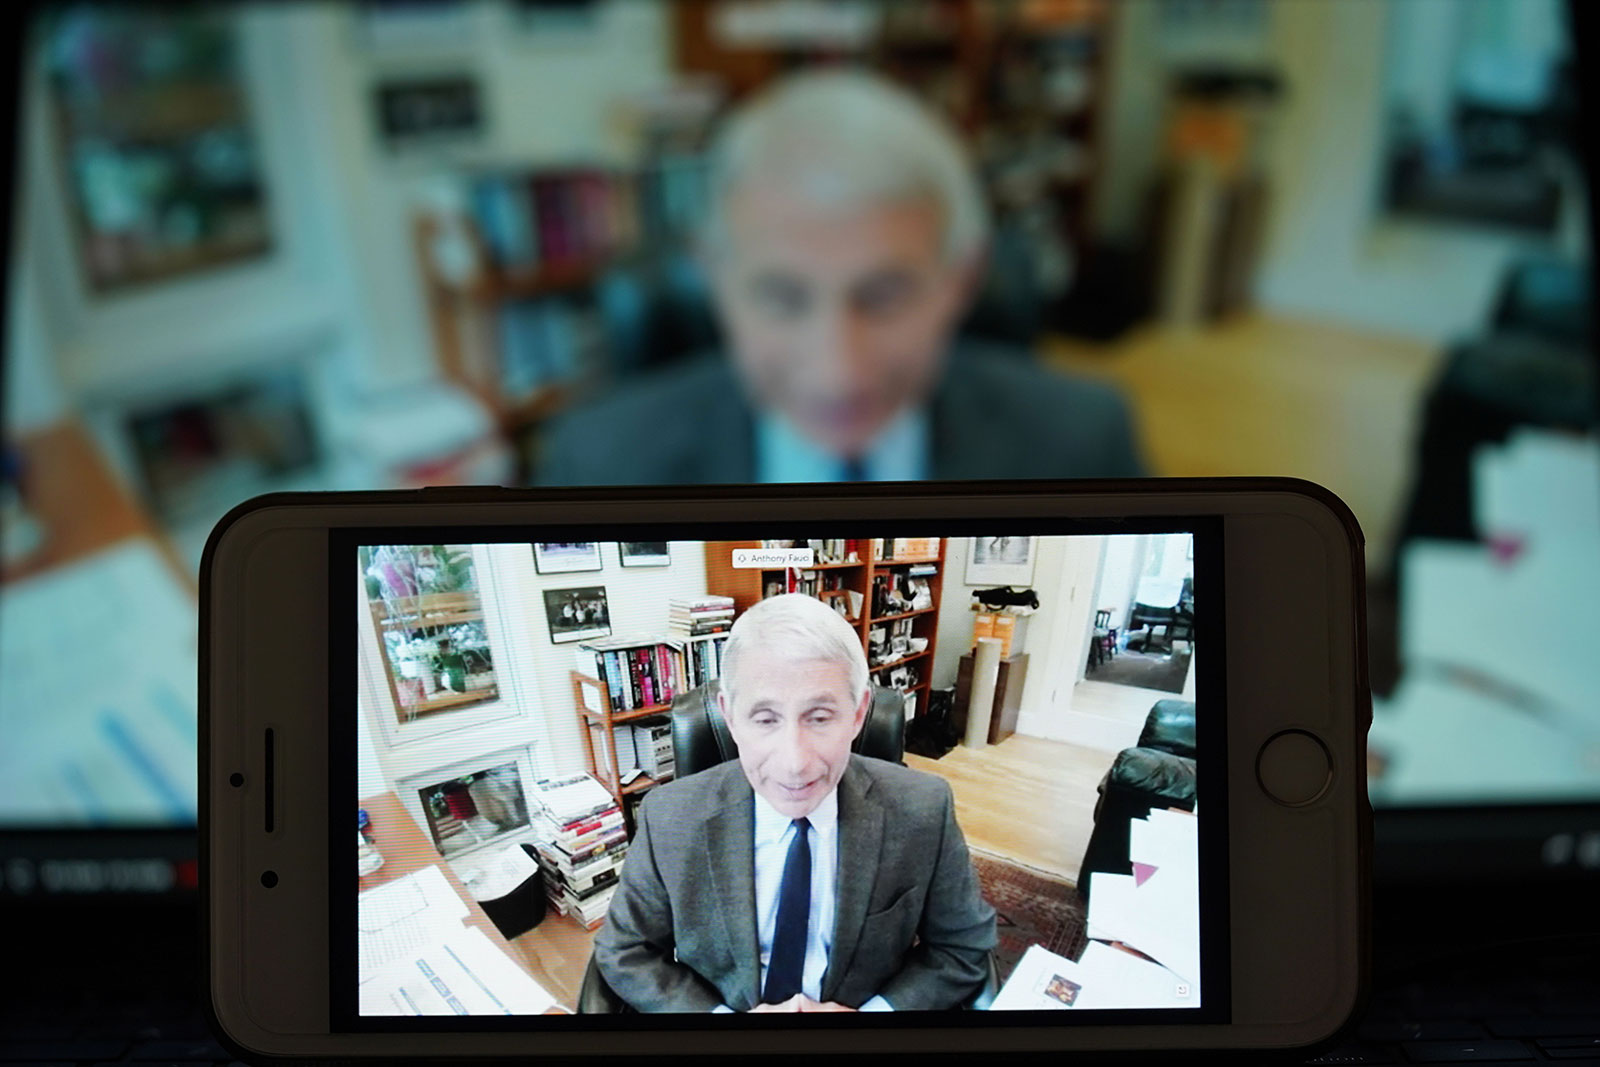 Dr. Anthony Fauci, director of the National Institute of Allergy and Infectious Diseases, speaks during a teleconference hearing hosted by a Senate panel on the White House's response to the coronavirus in Washington on May 12.